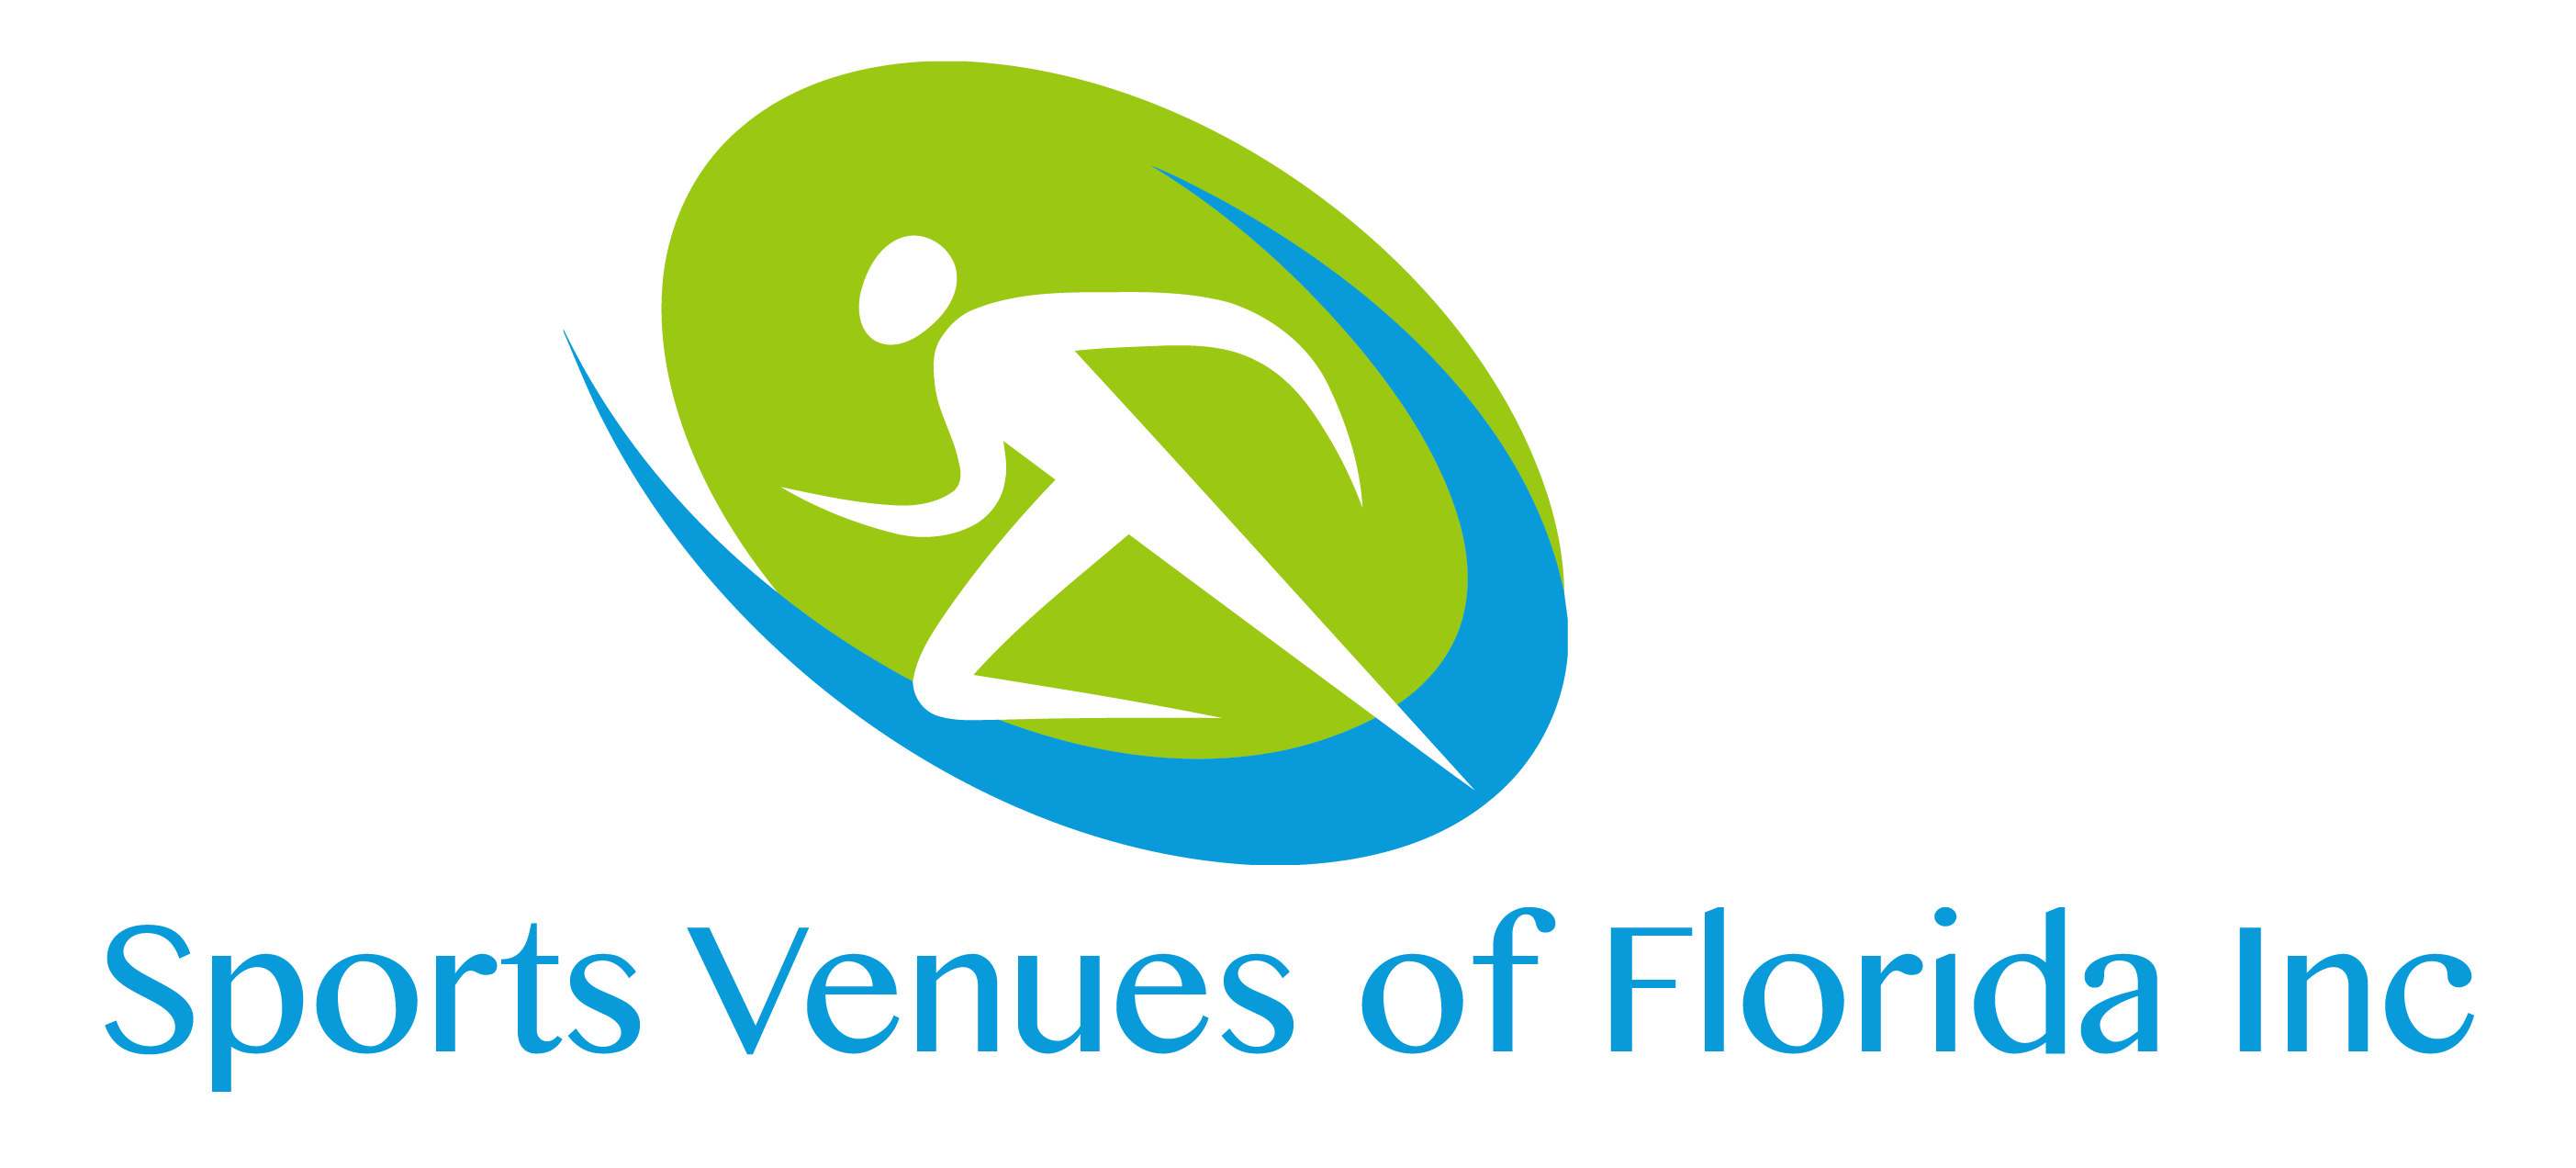 Sports Venues of Florida, Inc.,